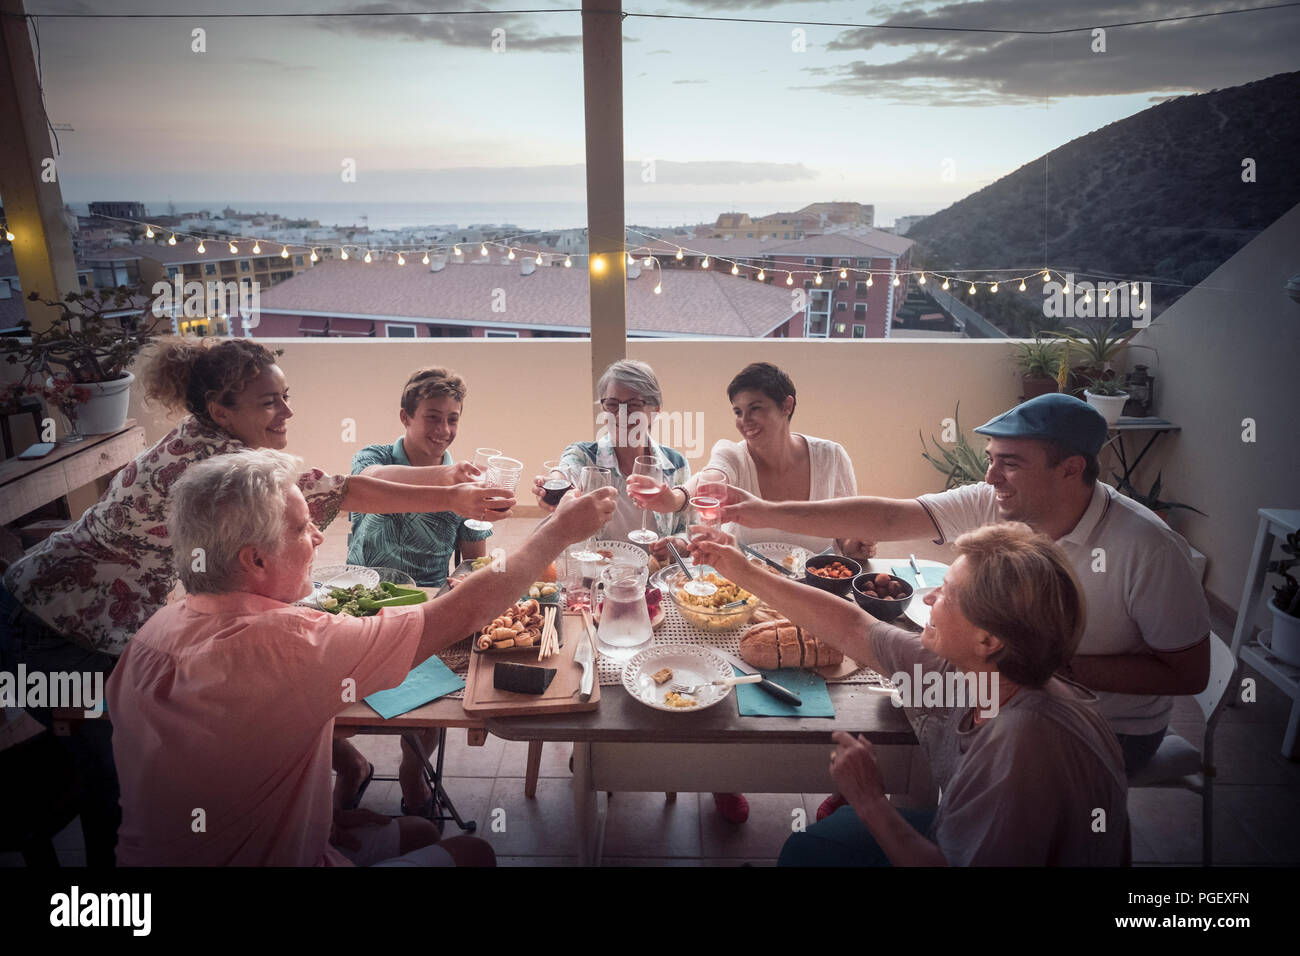 group of different ages people in friendship eat together a dinner event cheering with wine and enjoy the lifestyle. happiness and joyful for friends  - Stock Image